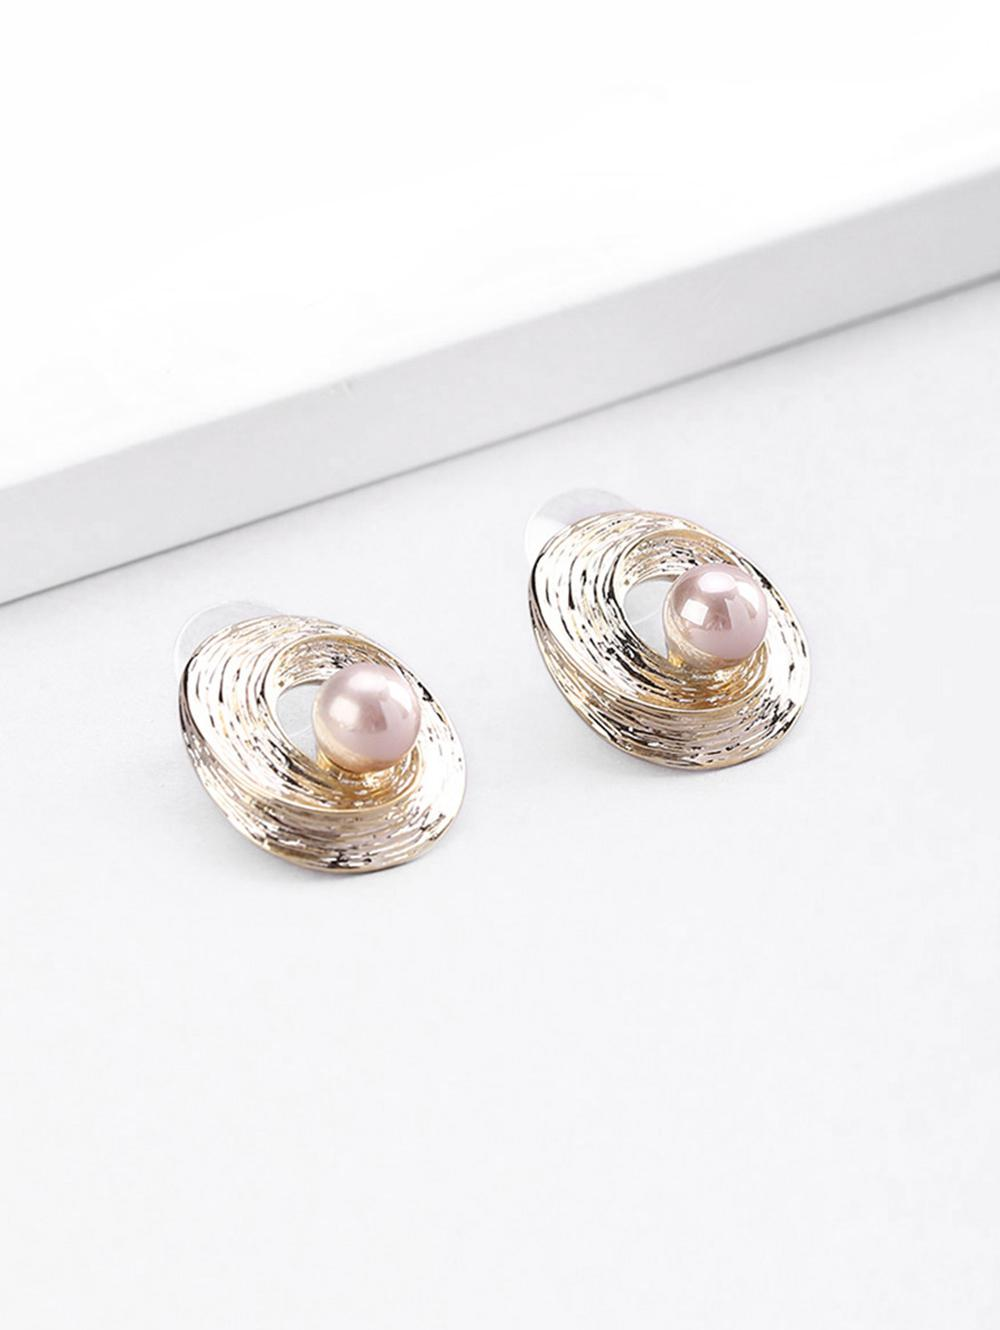 18K Gold Plated Faux Pearl Spiral Stud Earrings